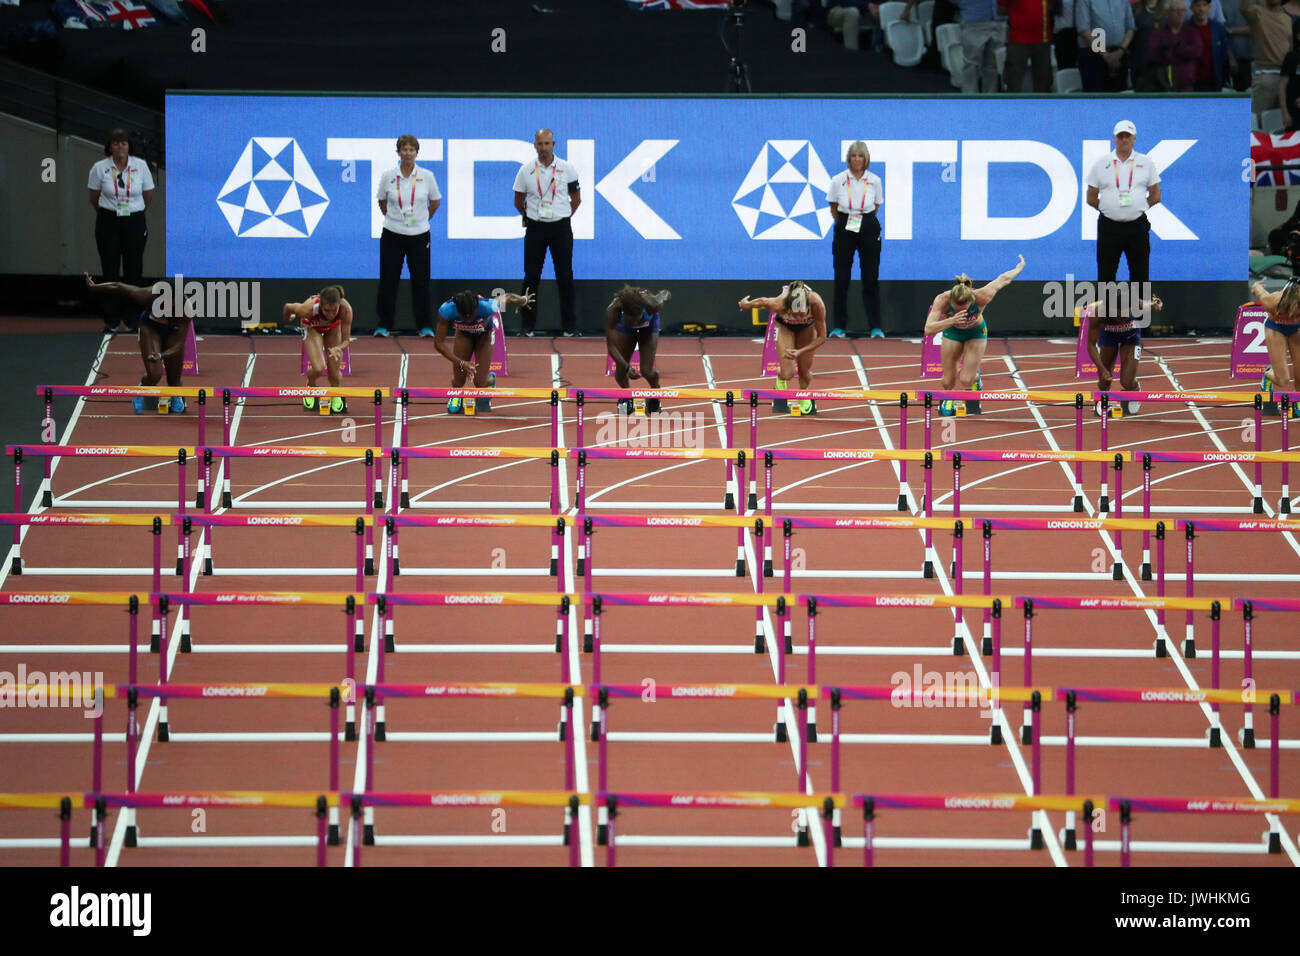 The Women's 100m hurdles final gets underway on day nine of the IAAF London 2017 world Championships at the London Stadium. © Paul Davey. - Stock Image